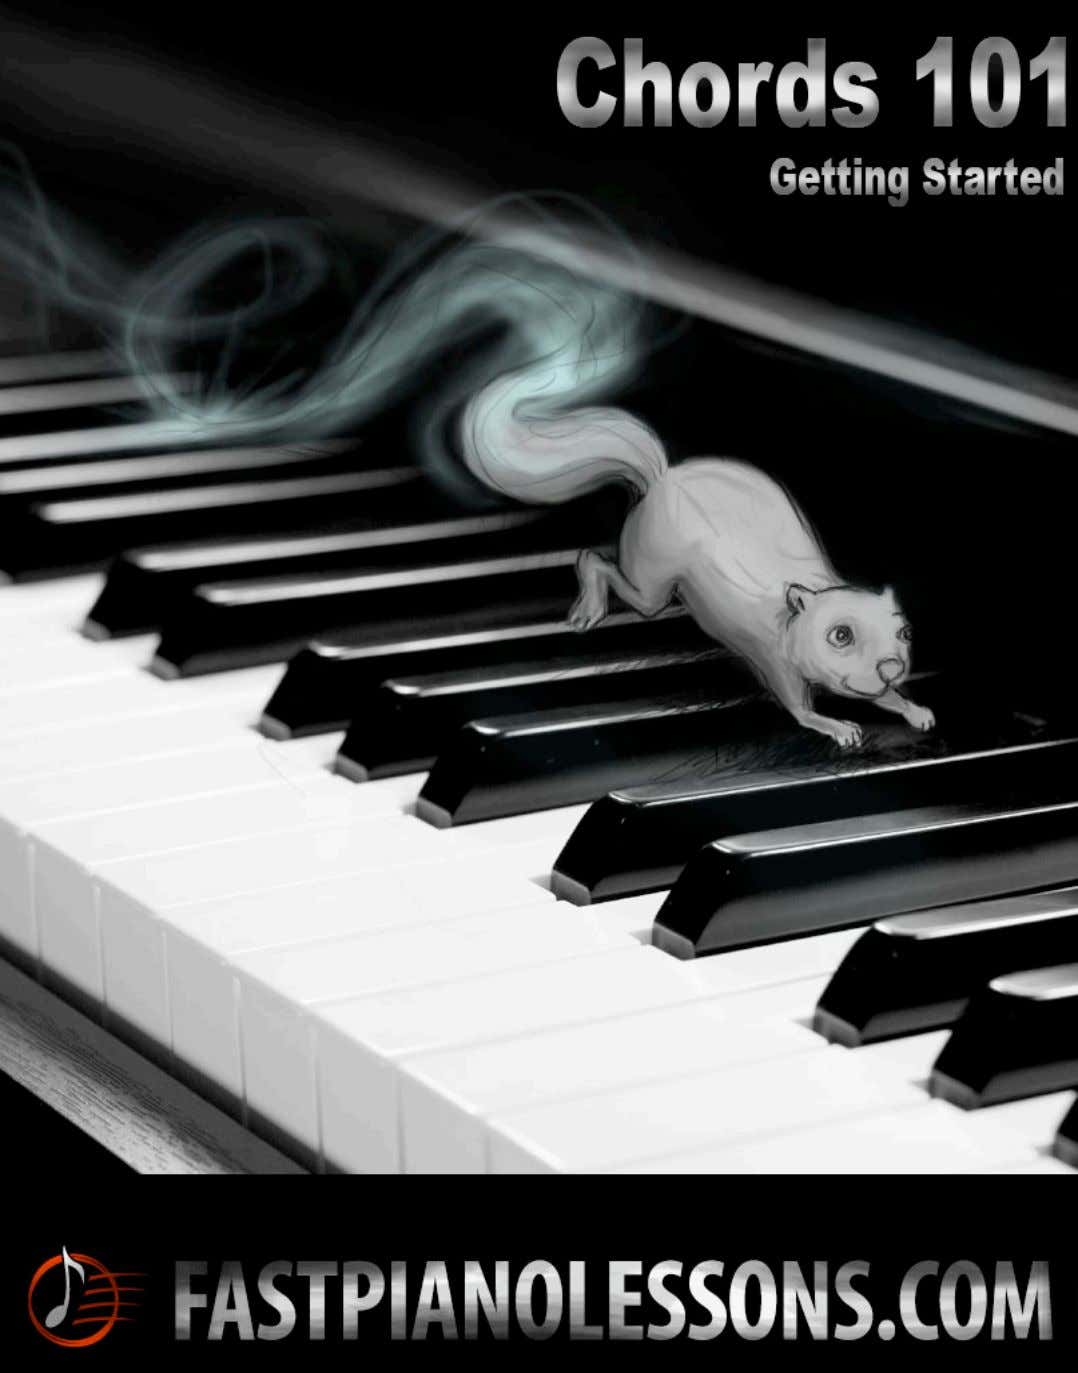 FastPianoLessons.com – Chords 101 - Introductory Course ©2008 by FastPianoLessons.com